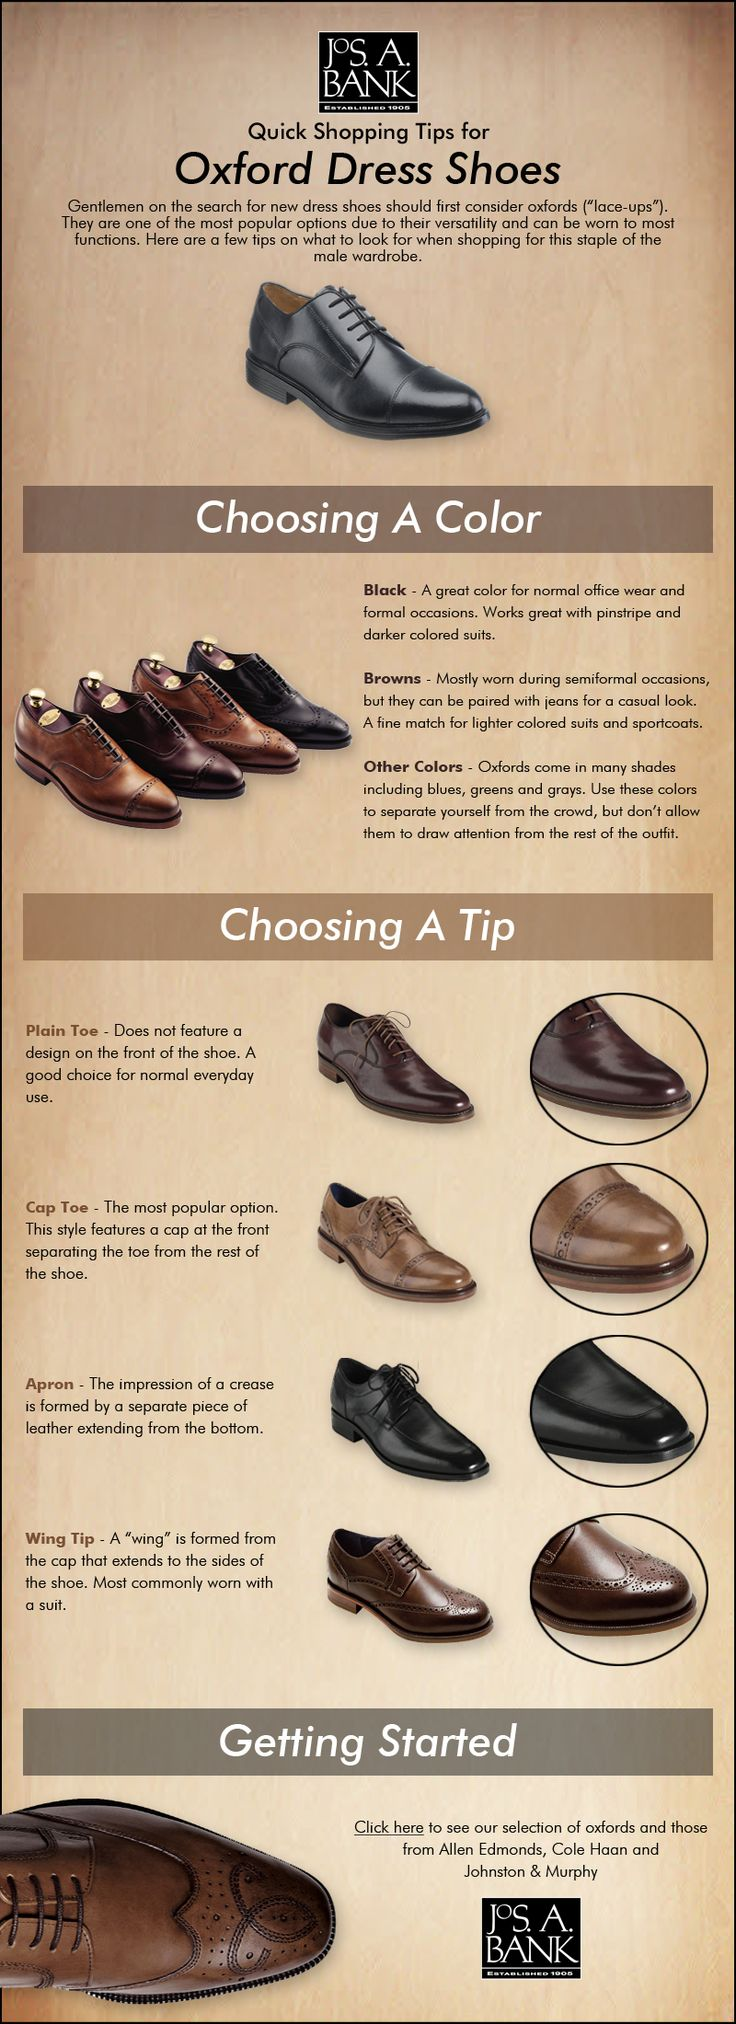 Looking for new dress shoes? Here are a few tips on shopping for oxfords.